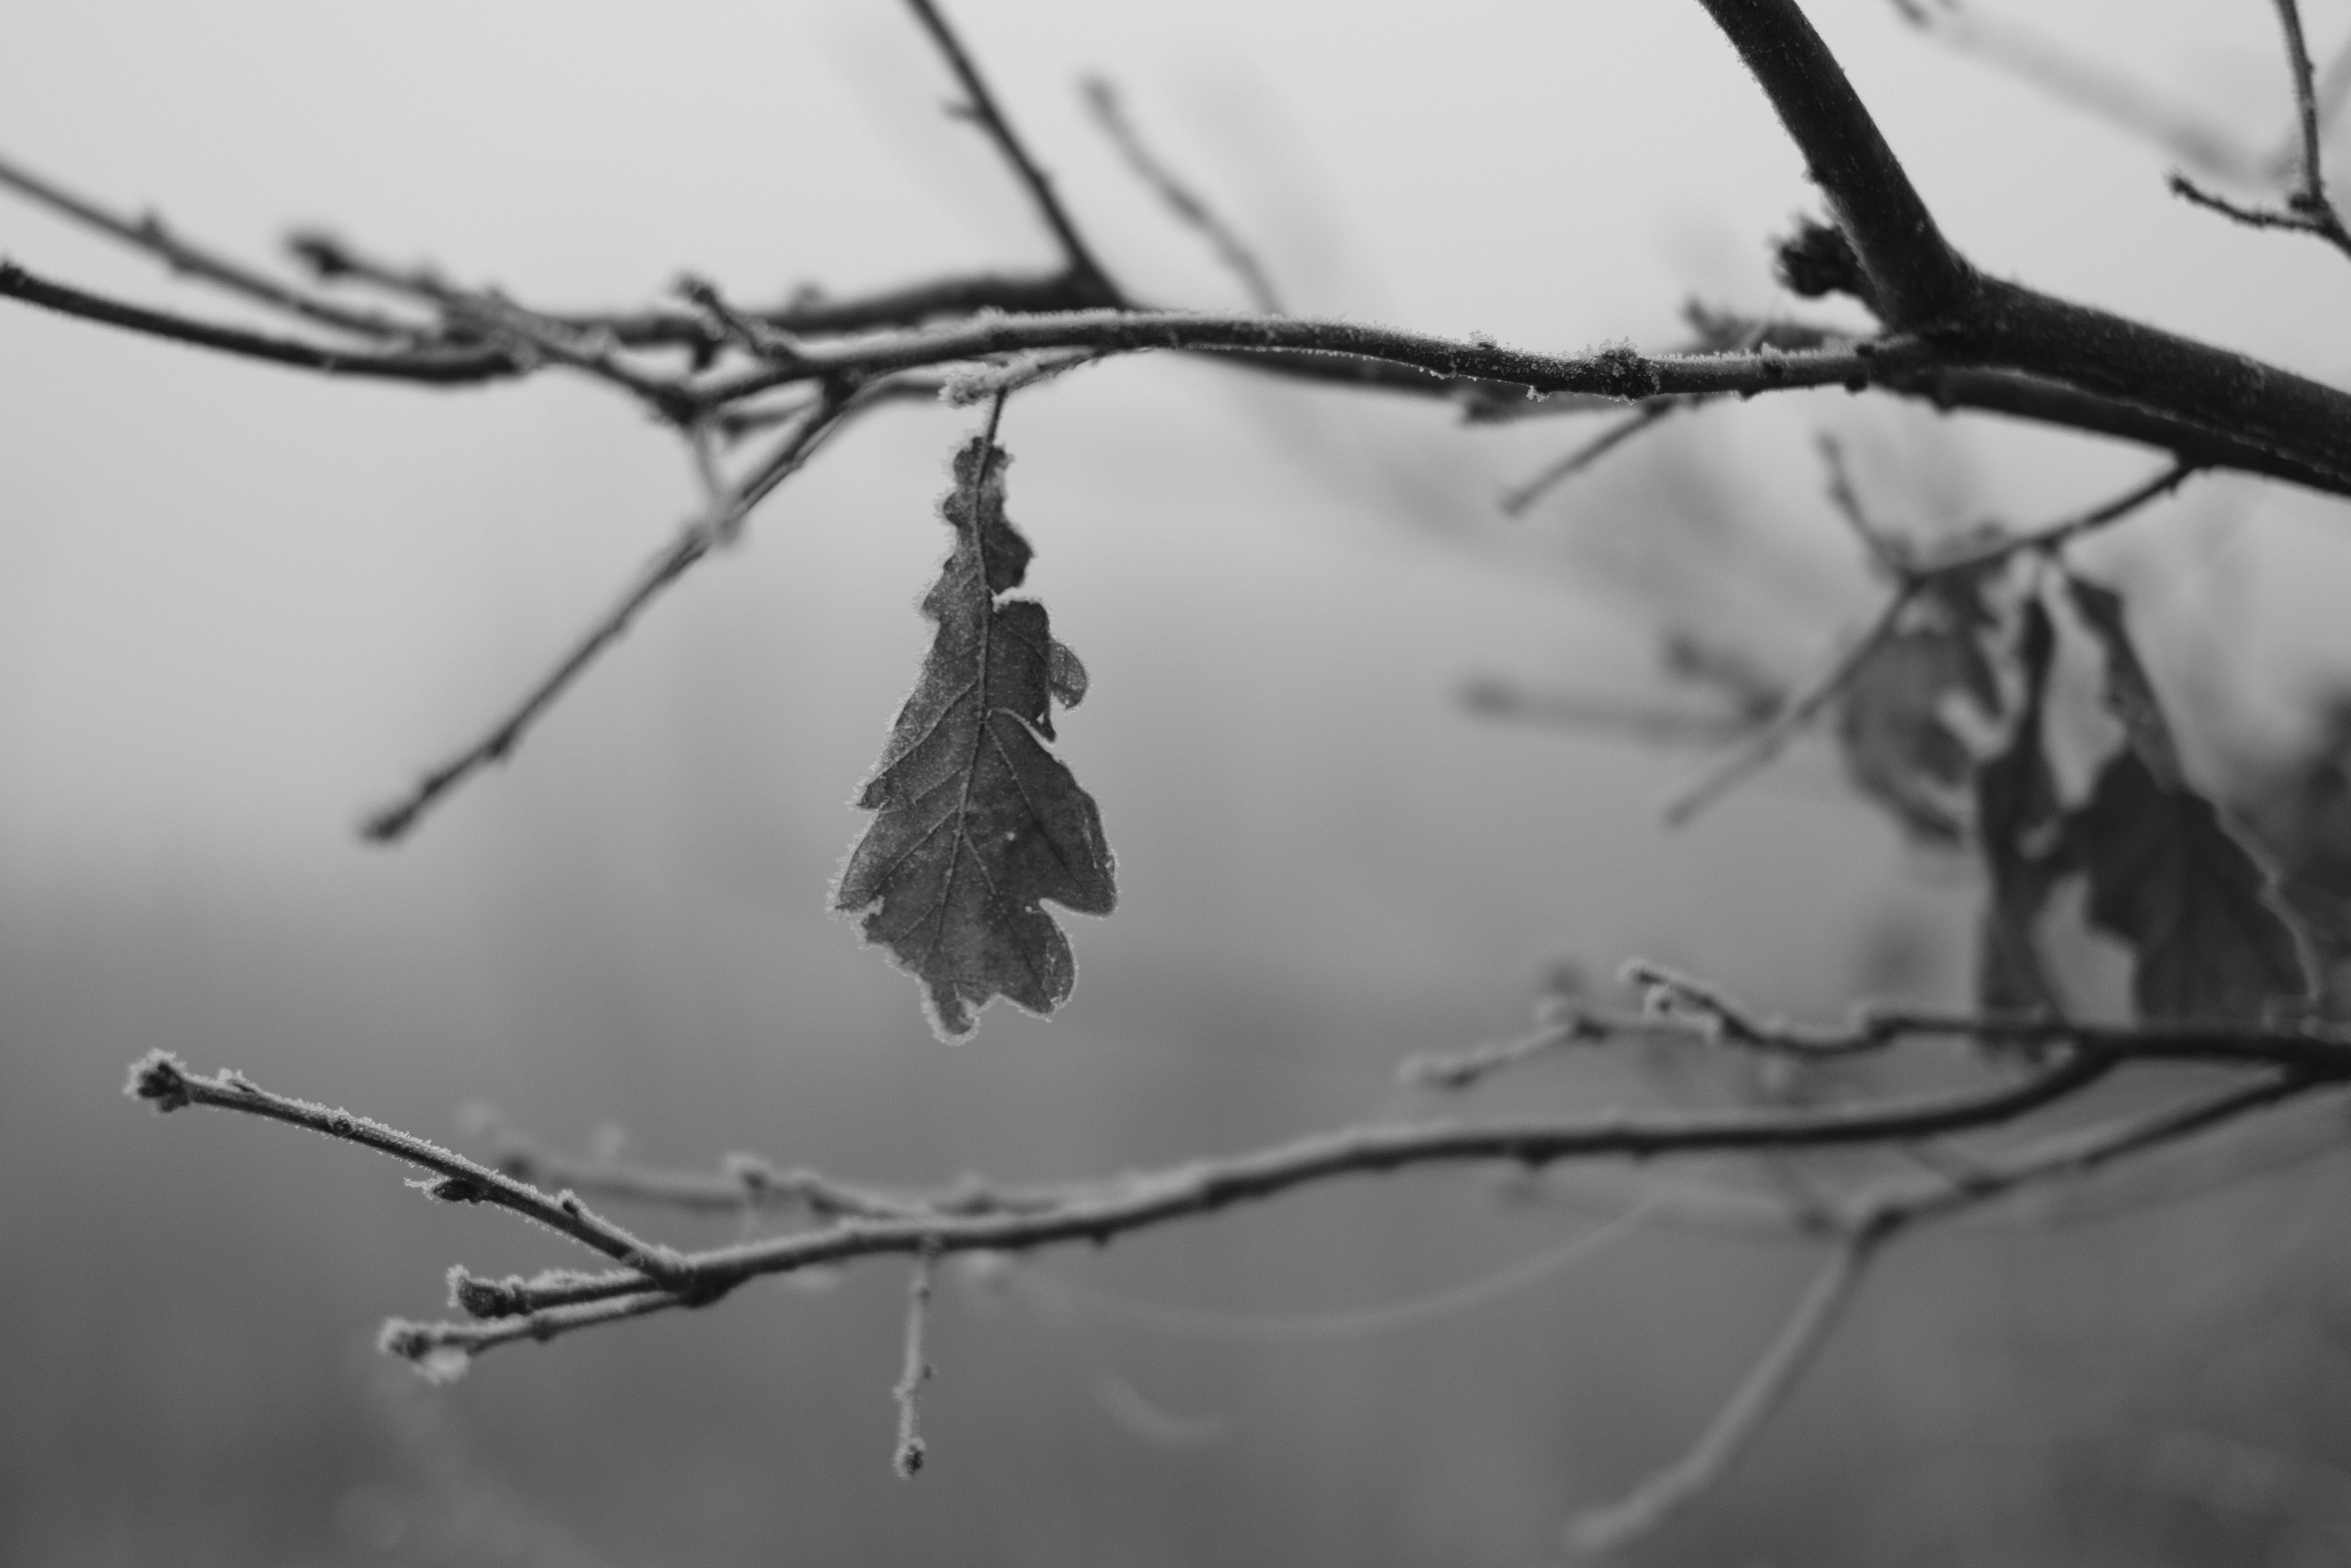 selective focus grayscale photography of leaf